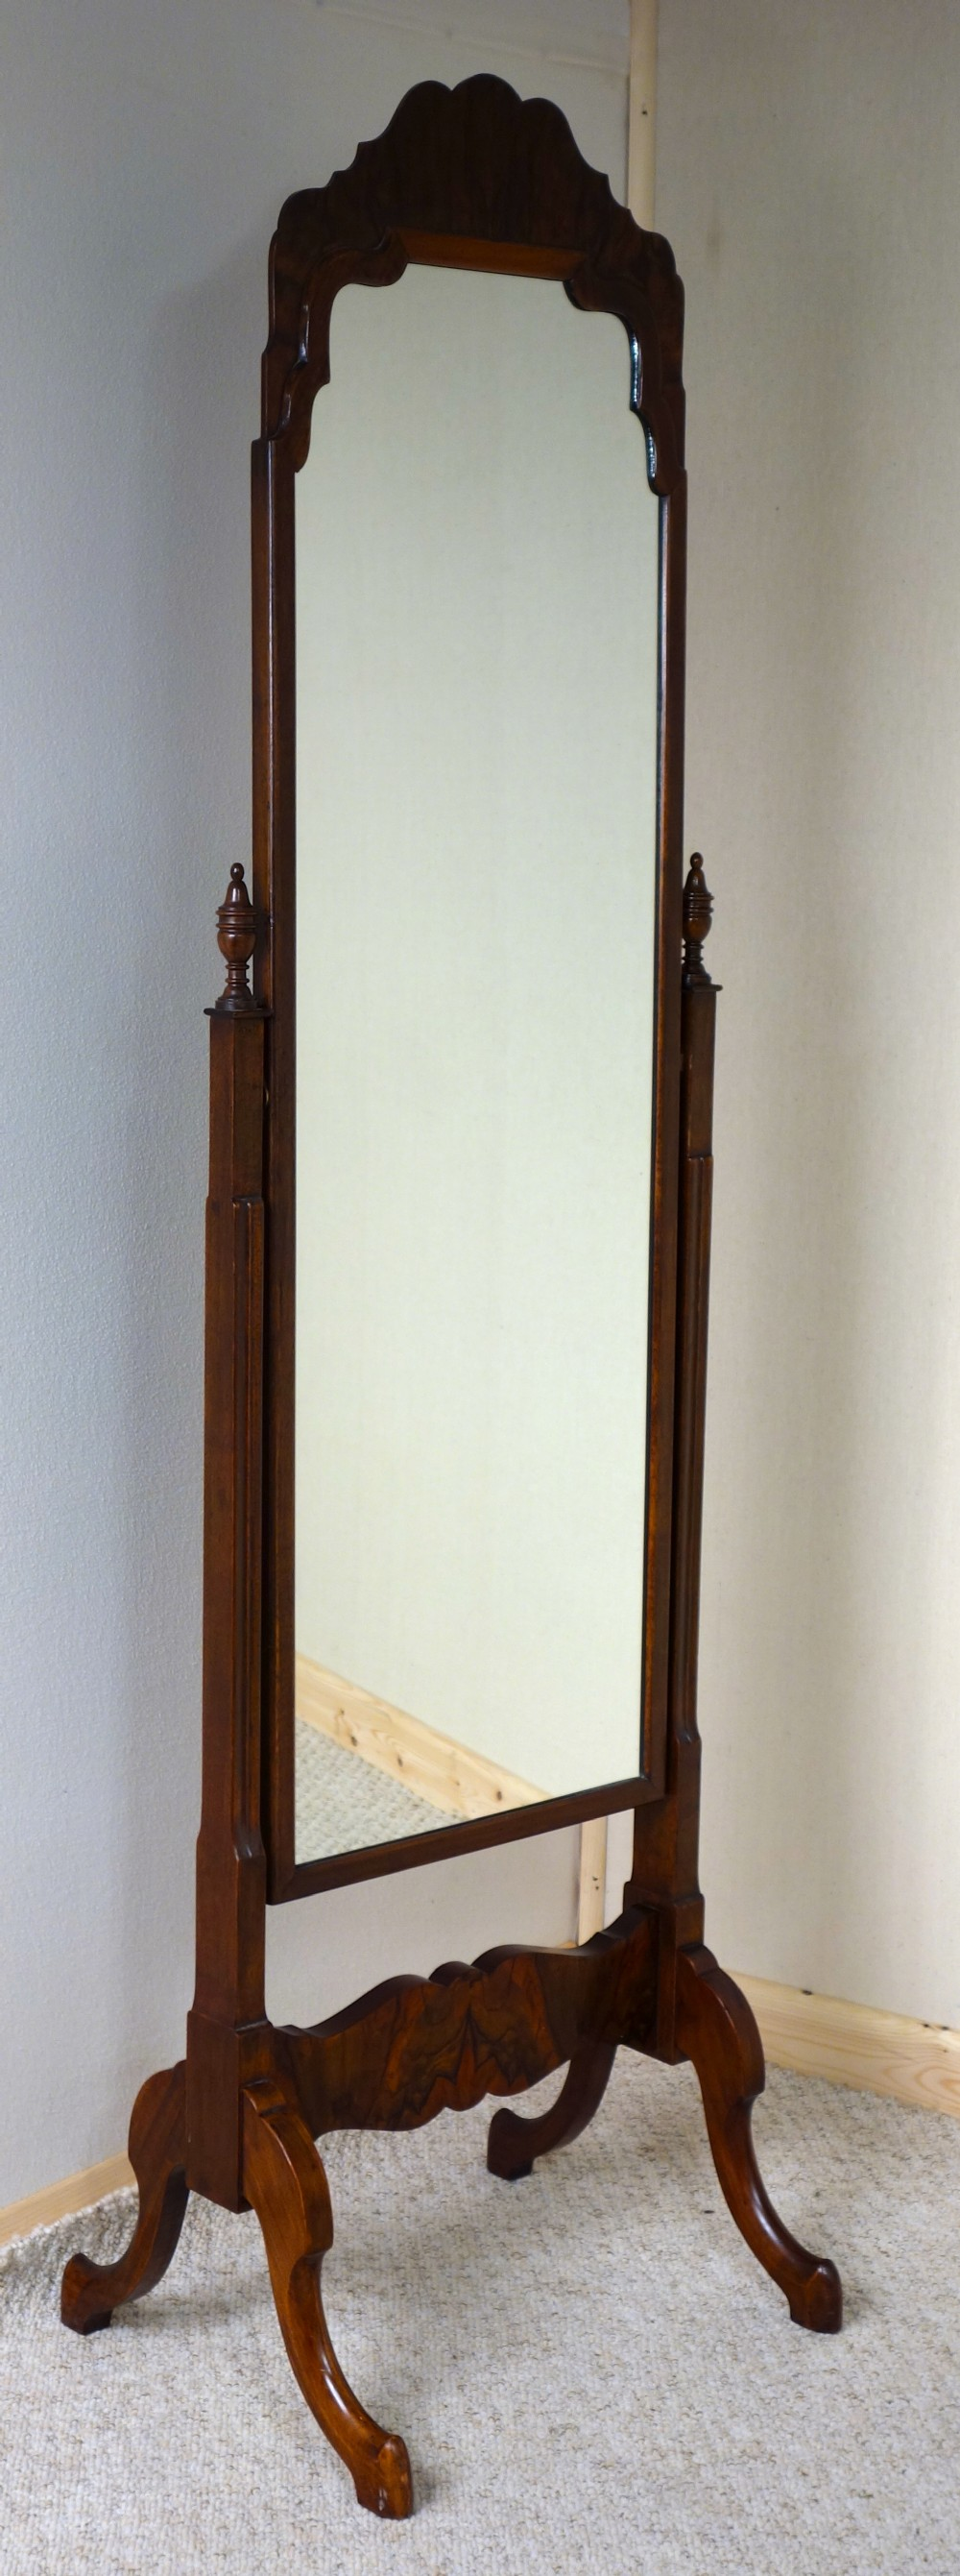 Walnut cheval mirror 244349 for Cheval mirror